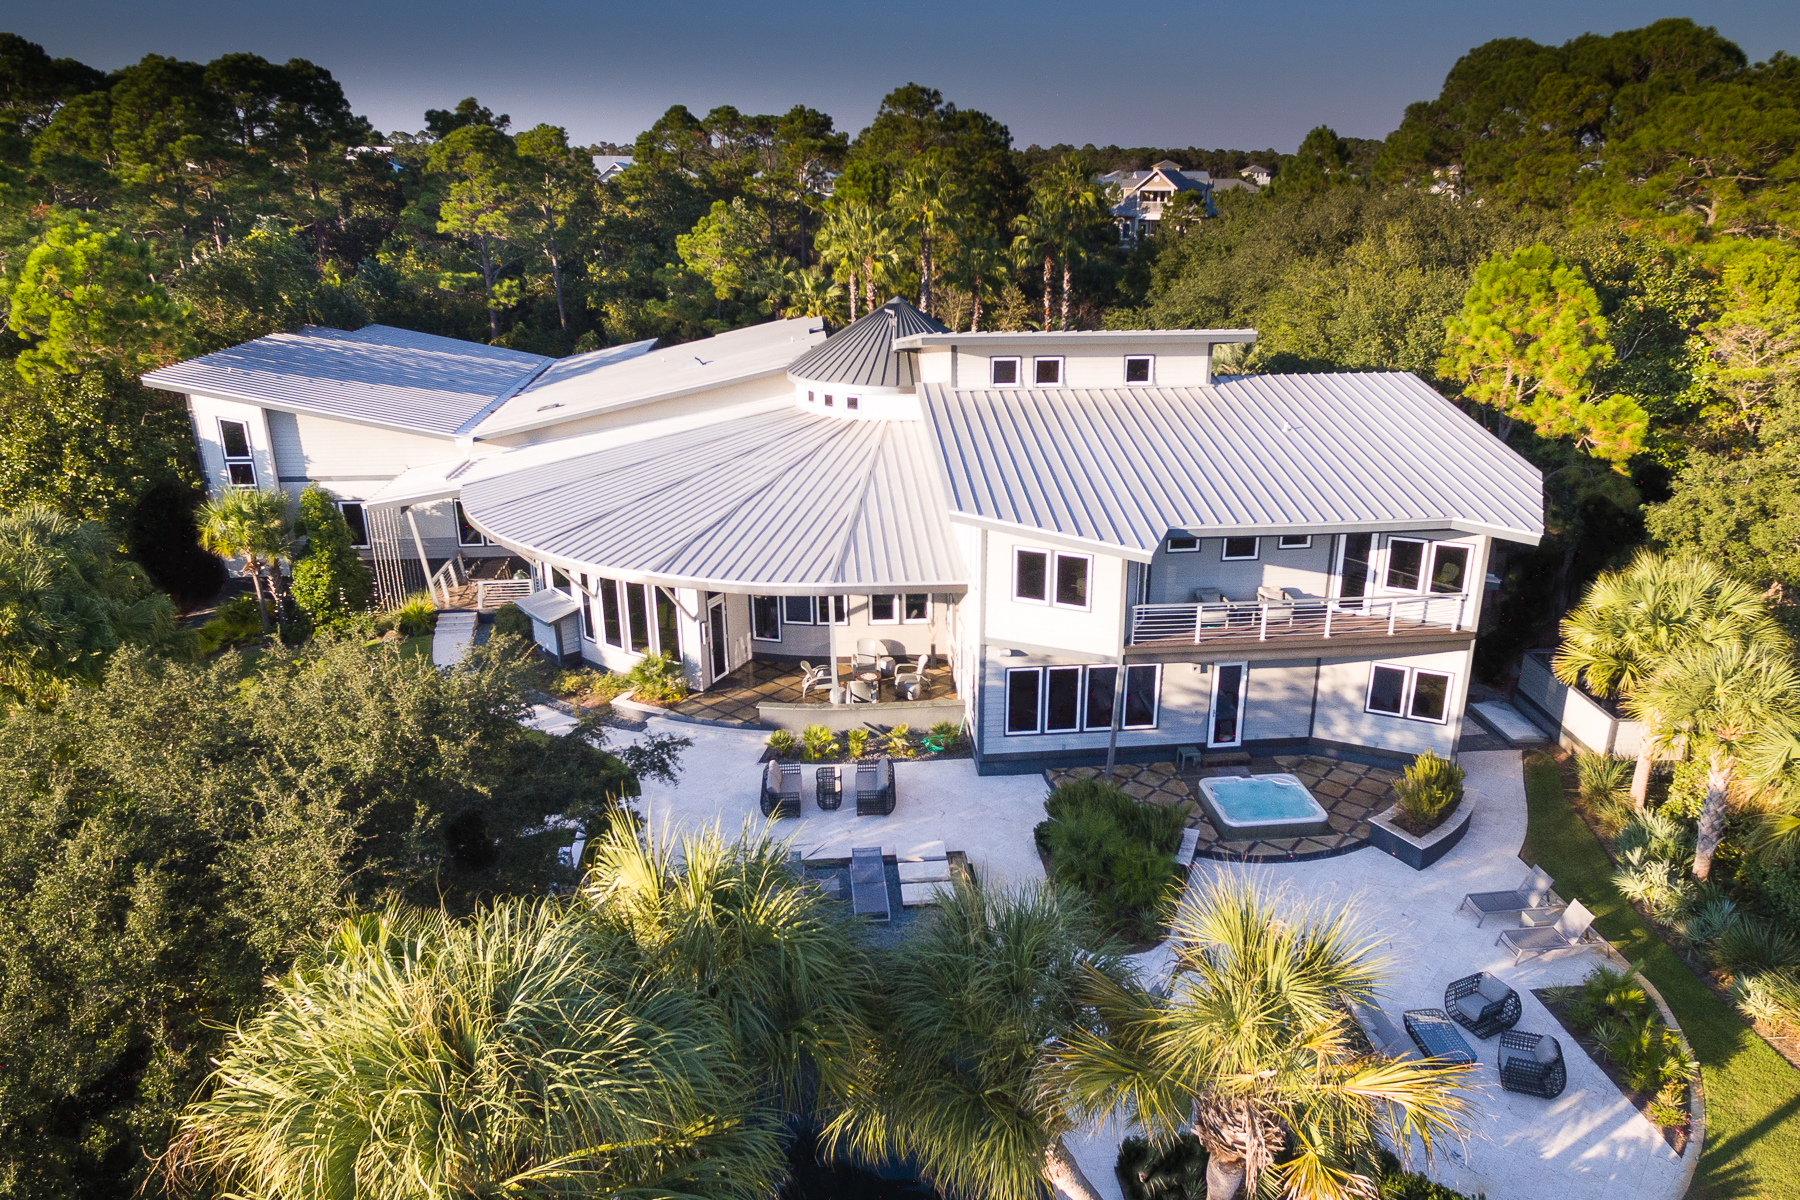 Single Family Home for Sale at MODERN WATERFRONT ESTATE OFFERS RARE PRIVACY ON UNIQUE SITE 1465 W County Highway 30A Santa Rosa Beach, Florida, 32459 United States